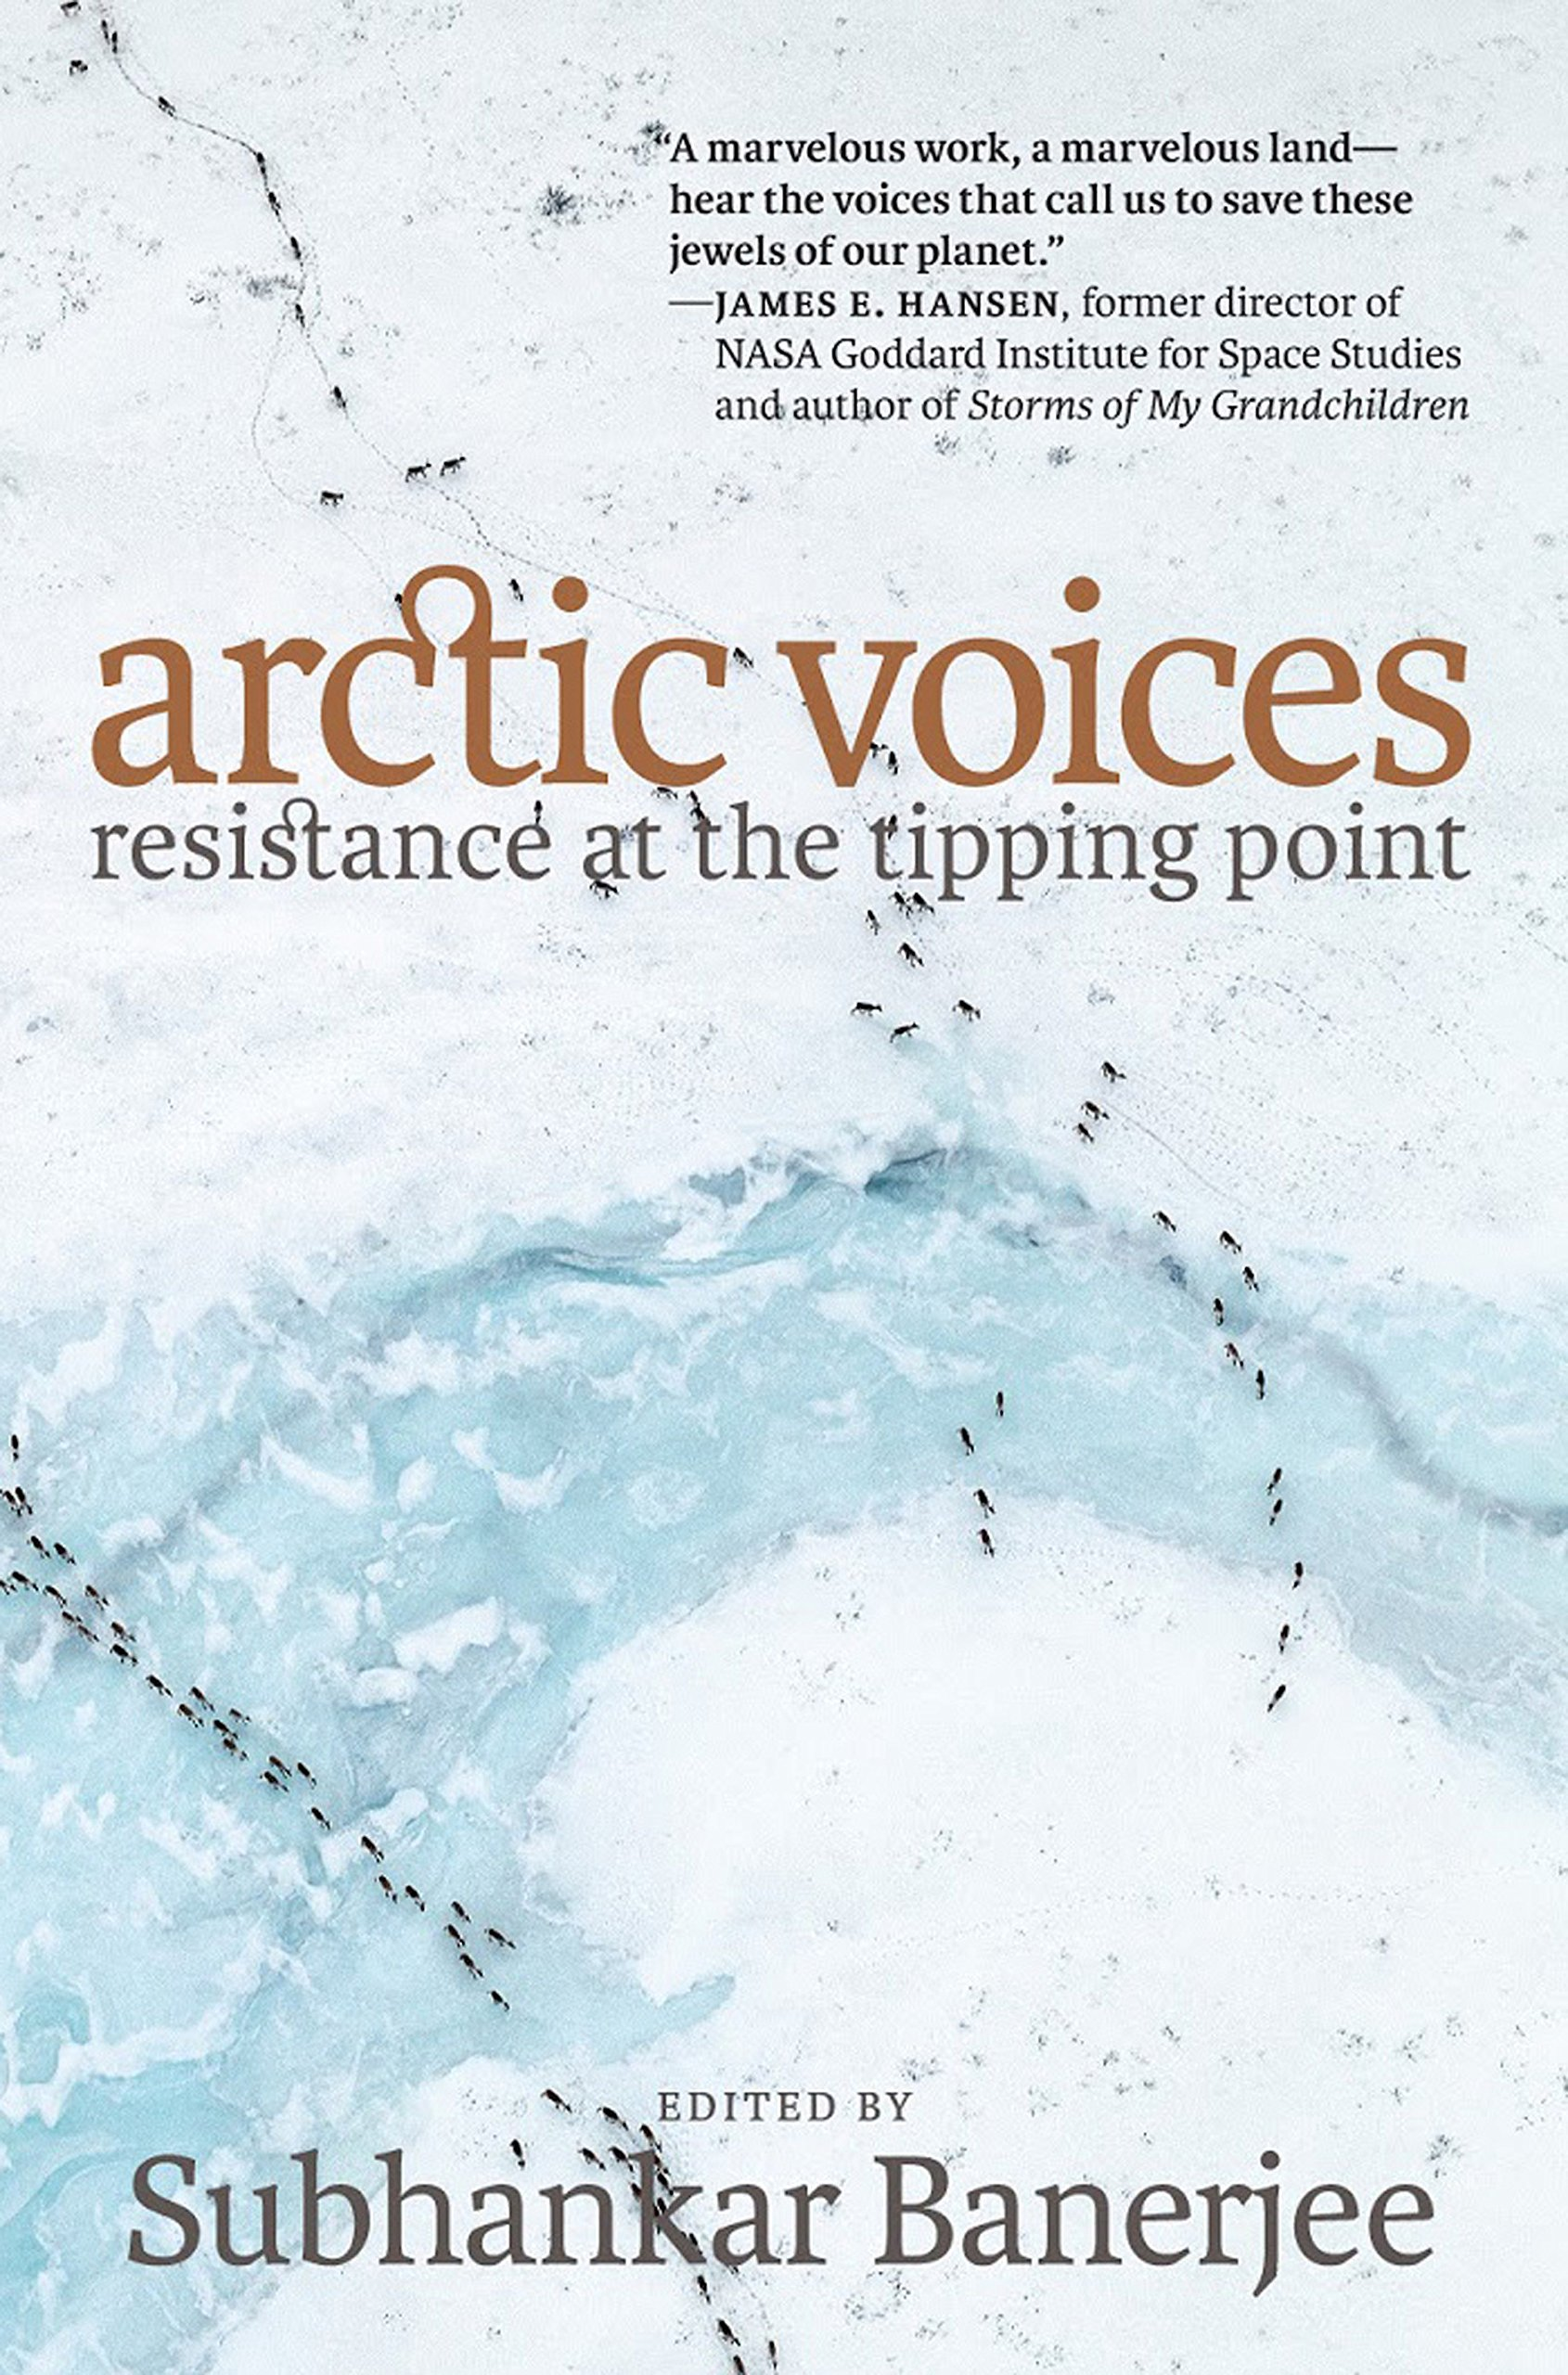 Arctic Voices: Resistance at the Tipping Point: Subhankar Banerjee ...